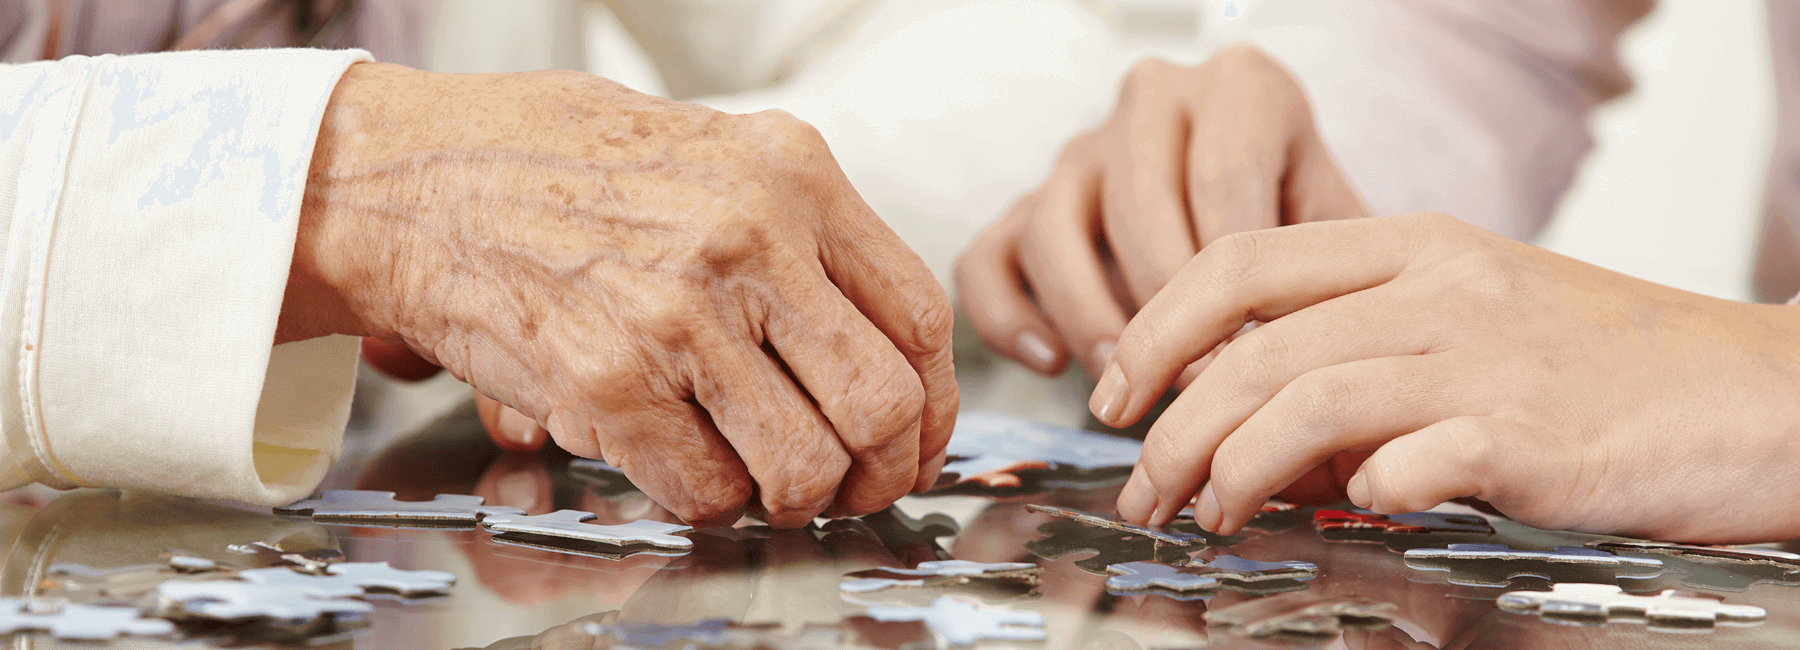 Braemar Care Services In Essex Dementia Residential Support